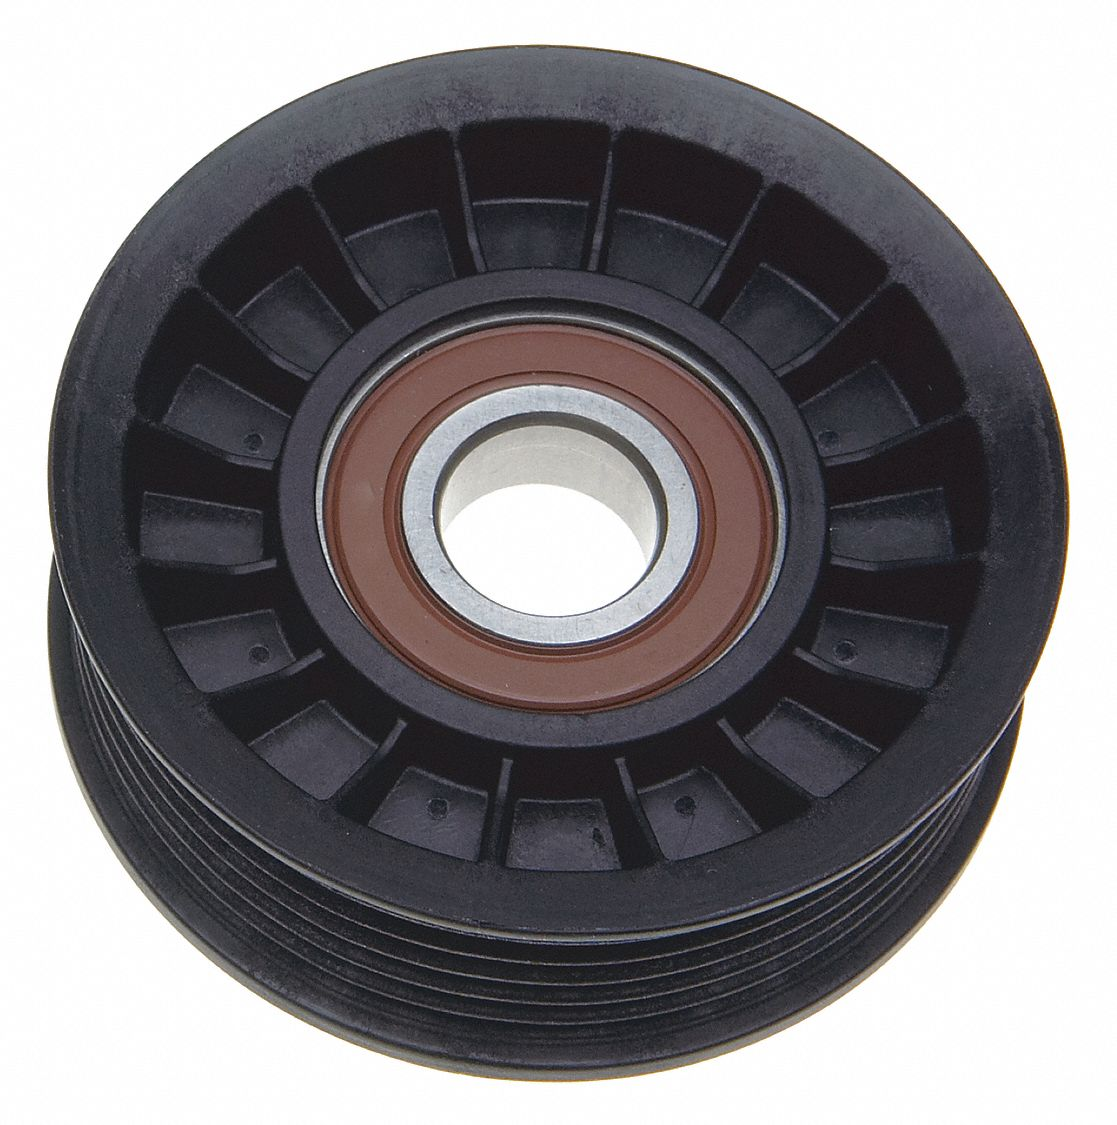 Dayco 89009 Tensioner /& Idler Pulley